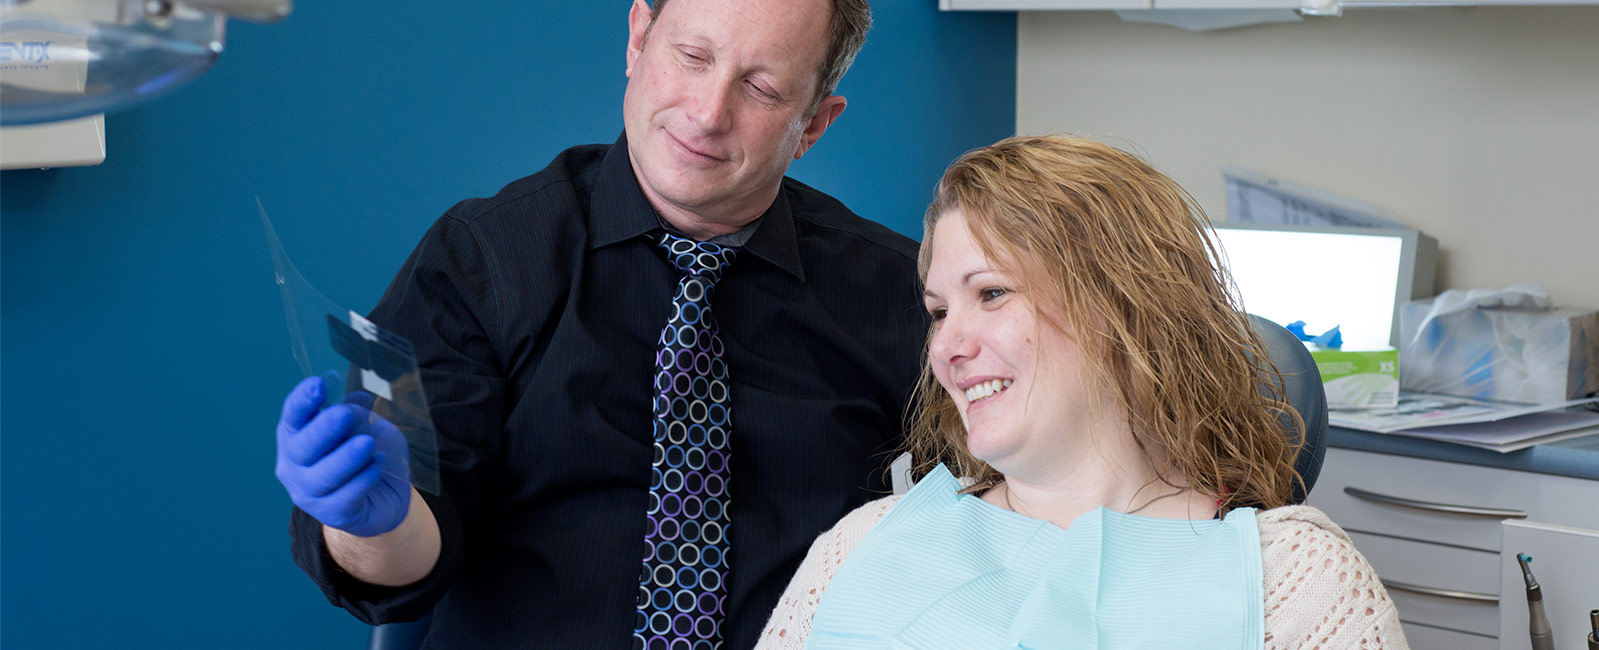 Services for Anxious Patients, Winnipeg Dentist